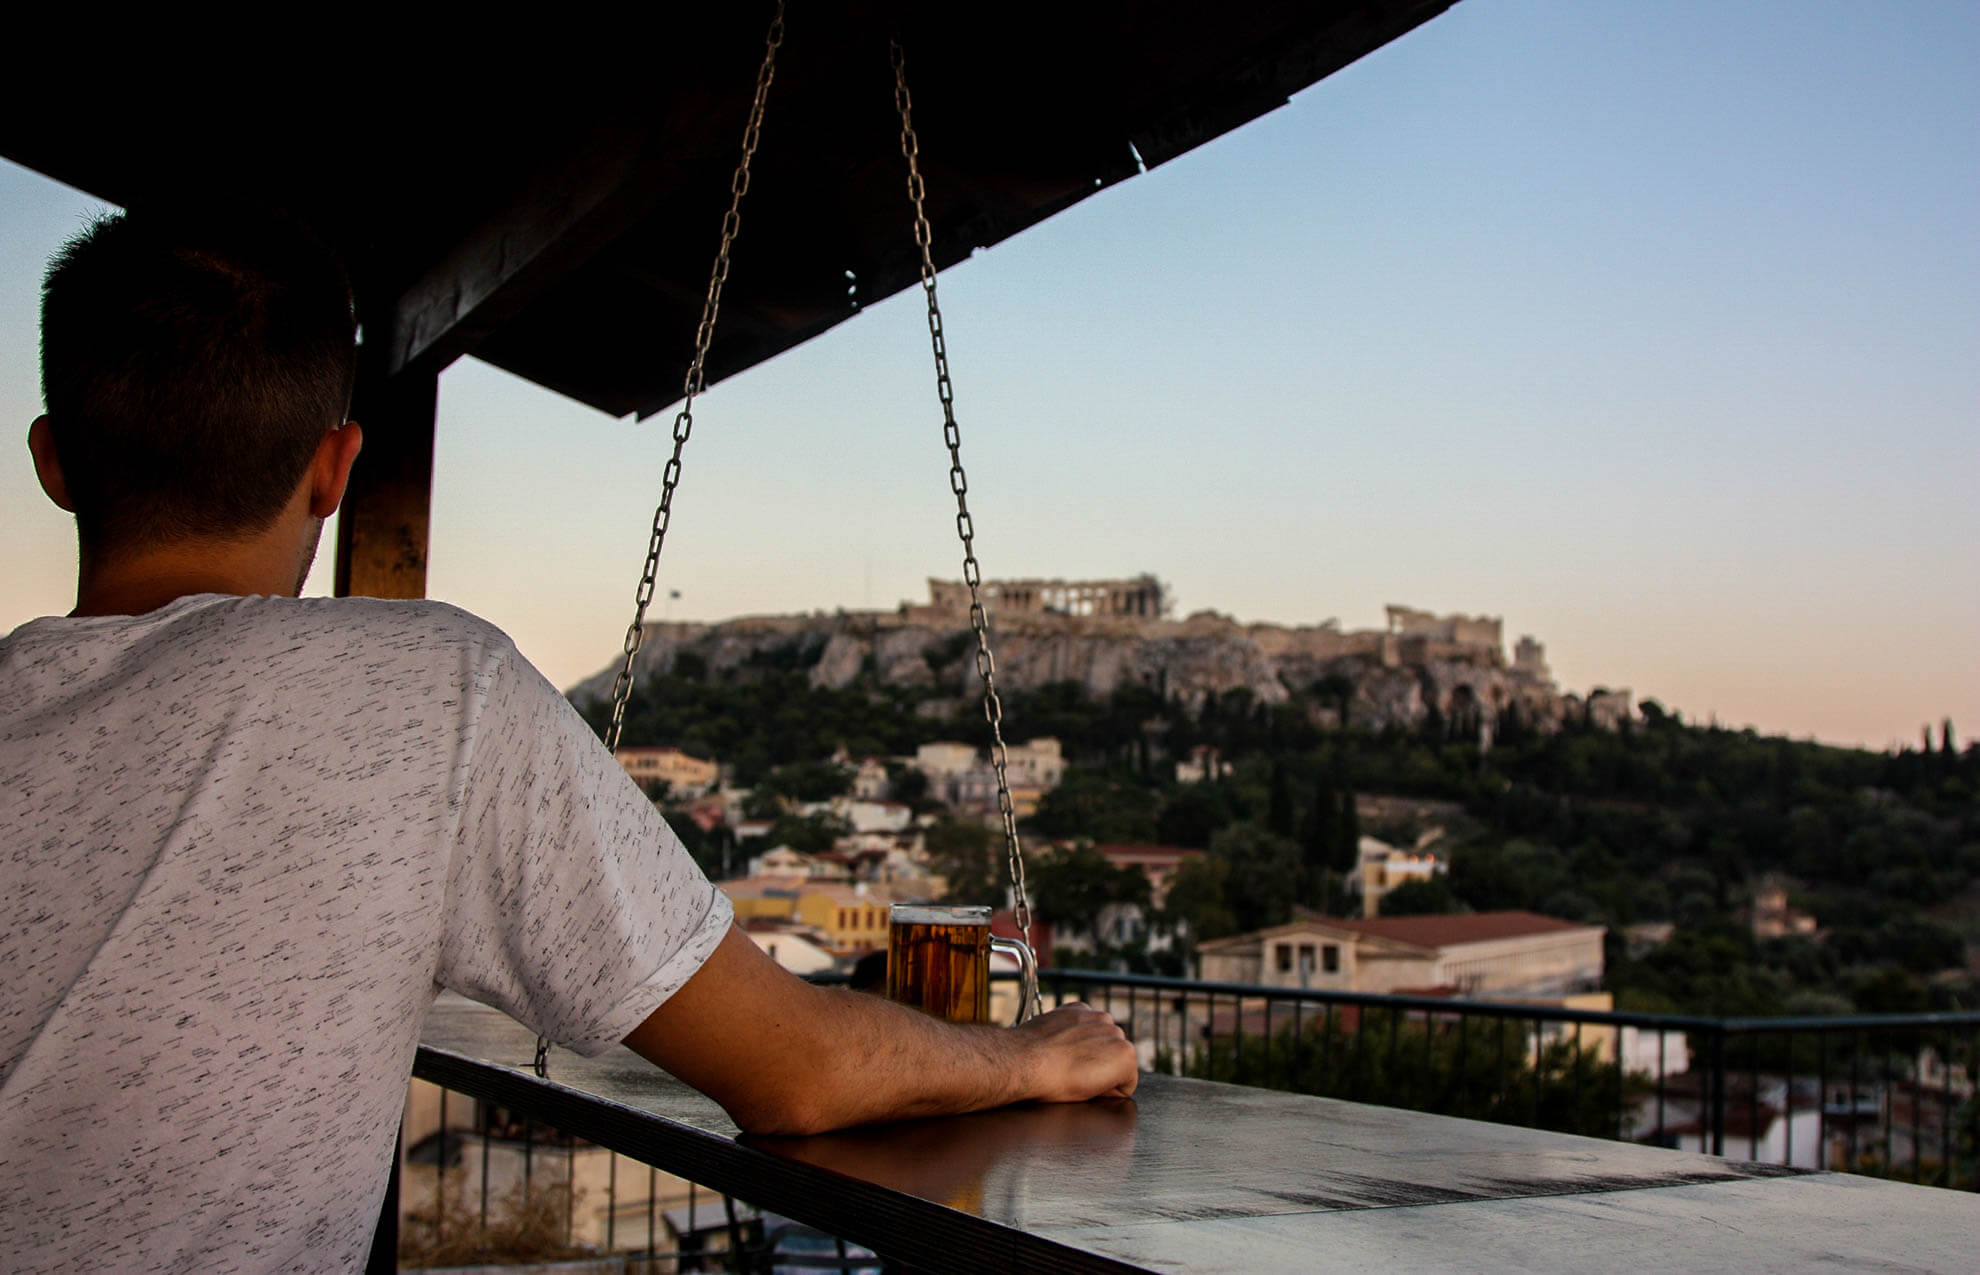 The great atmosphere, other travelers and the view to Acropolis is what you will feel at Pella Inn's Rooftop Bar.